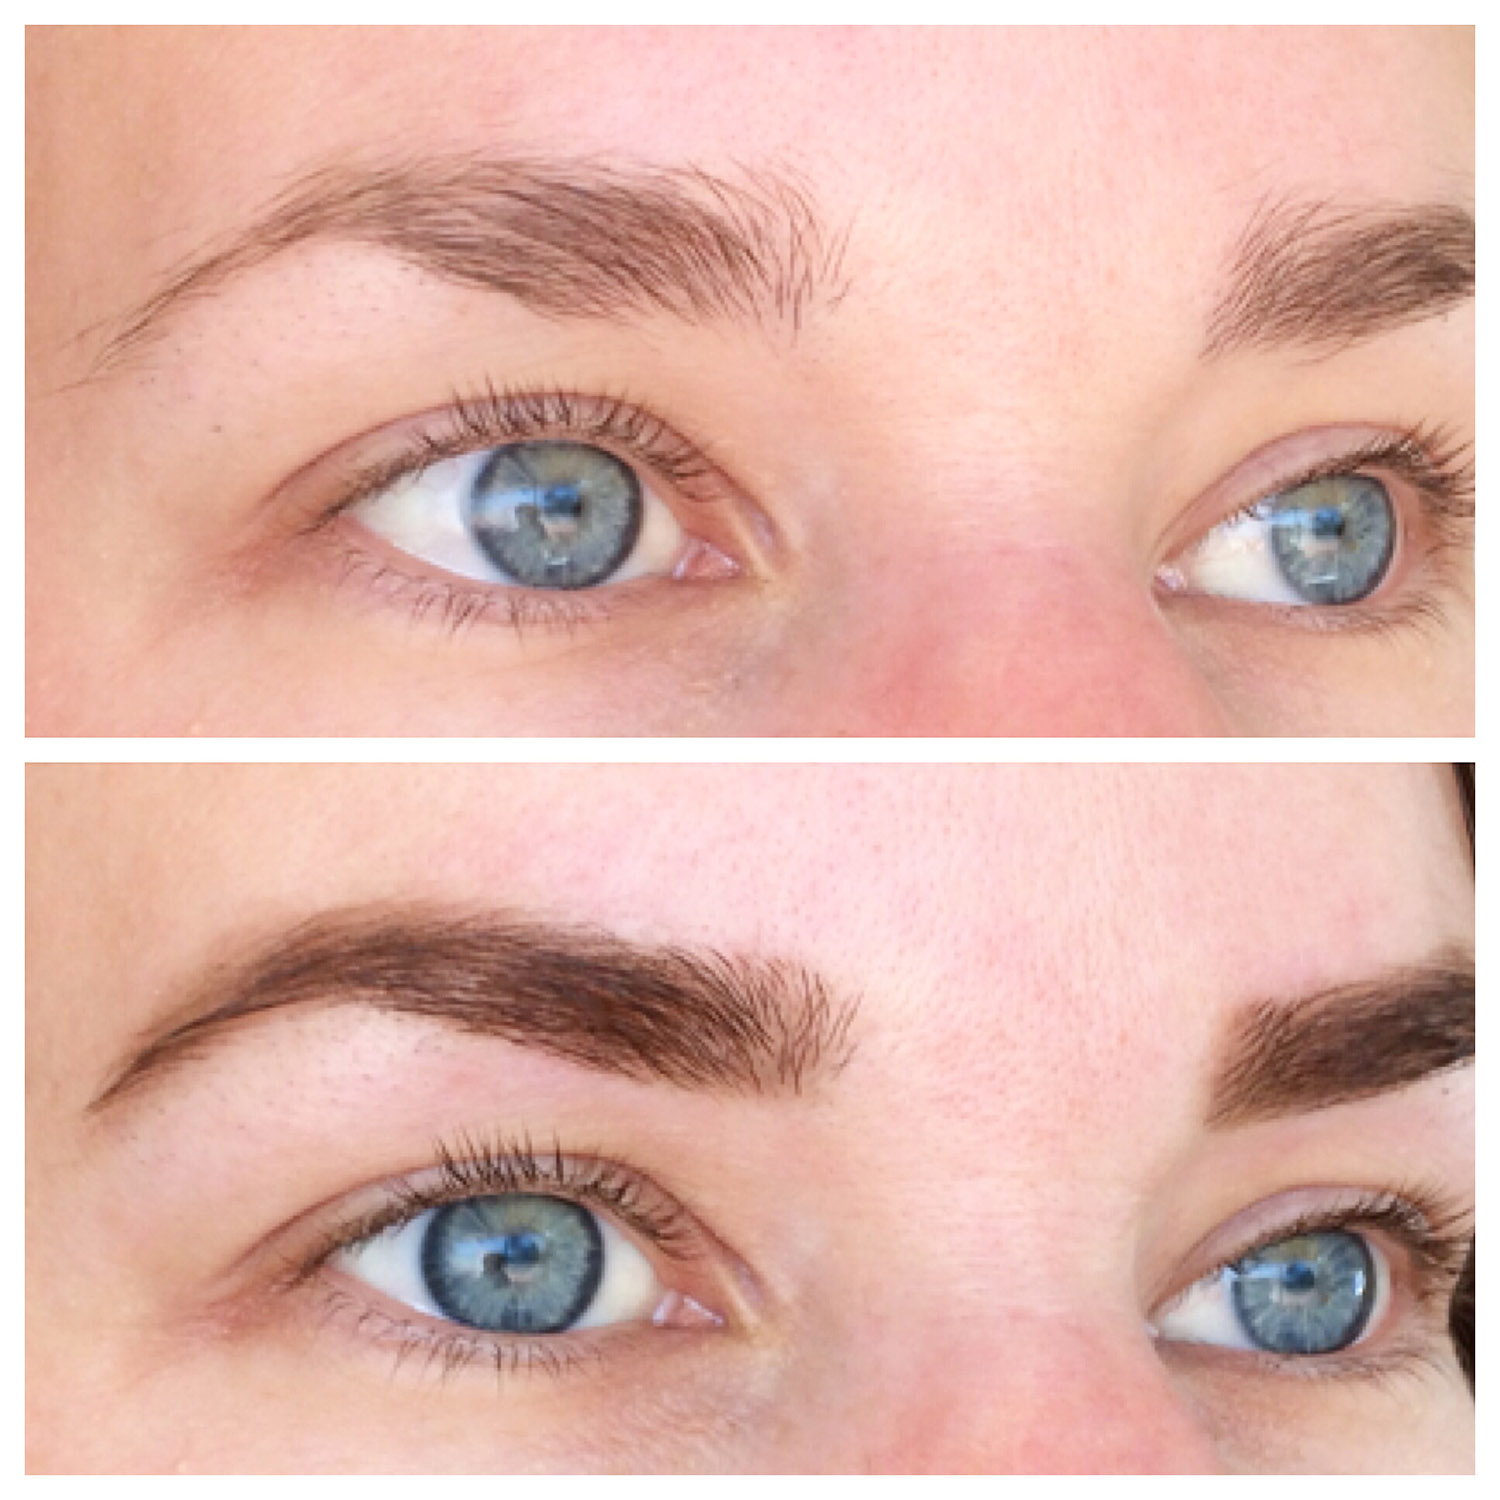 Perth Eyebrow Makeovers Brow Tattooing Images Eyebrows By Ainslie